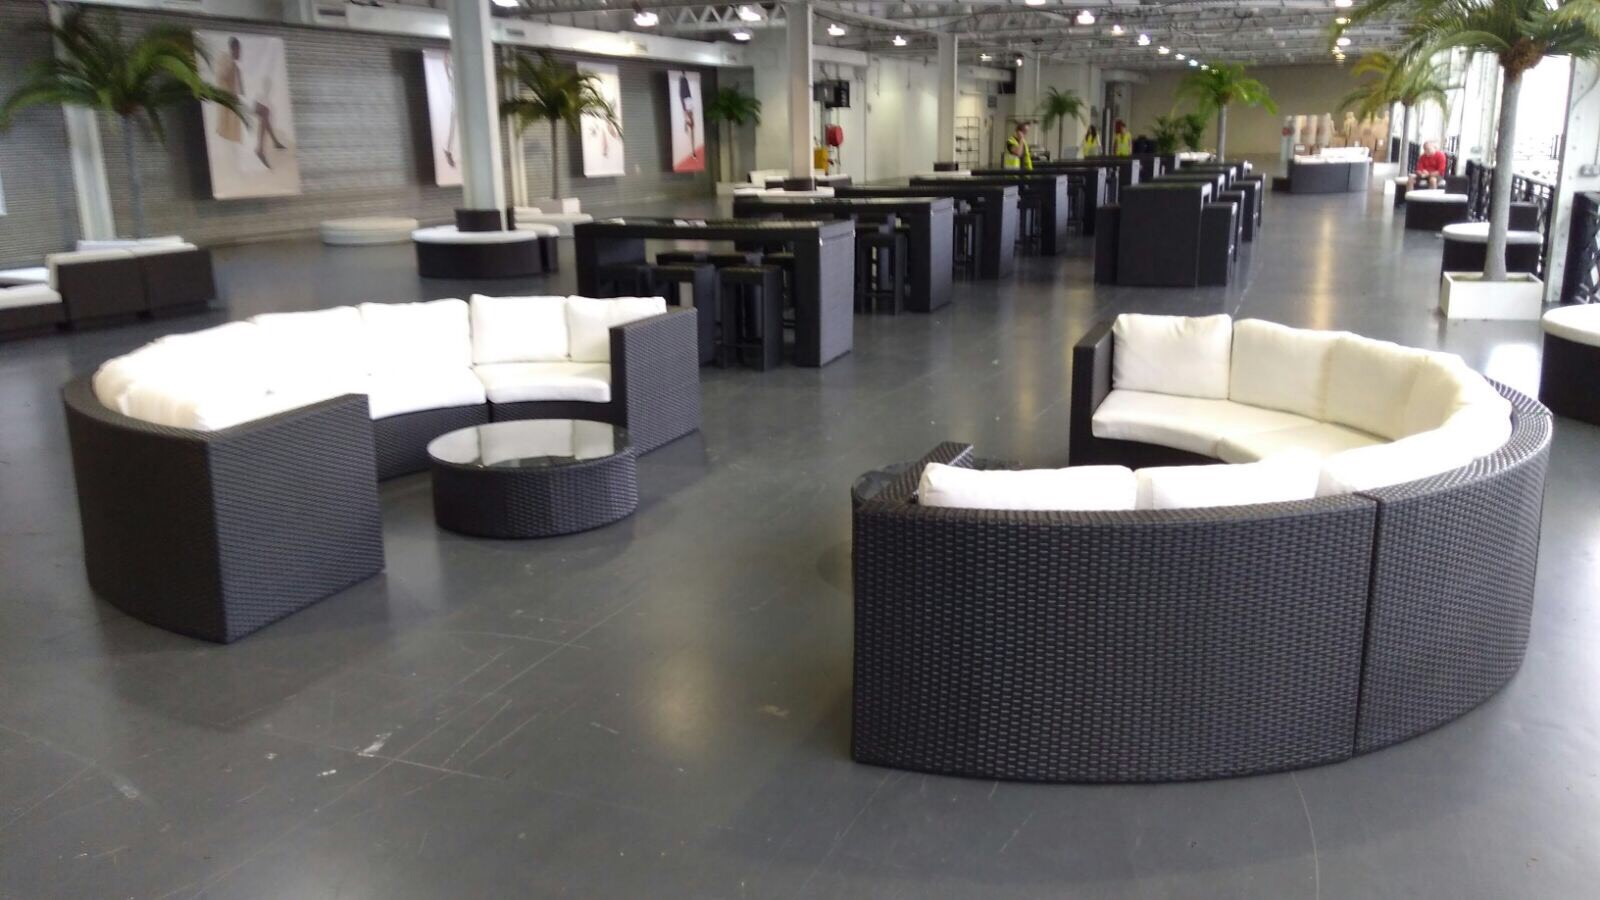 Black rattan sofas at event at Olympia